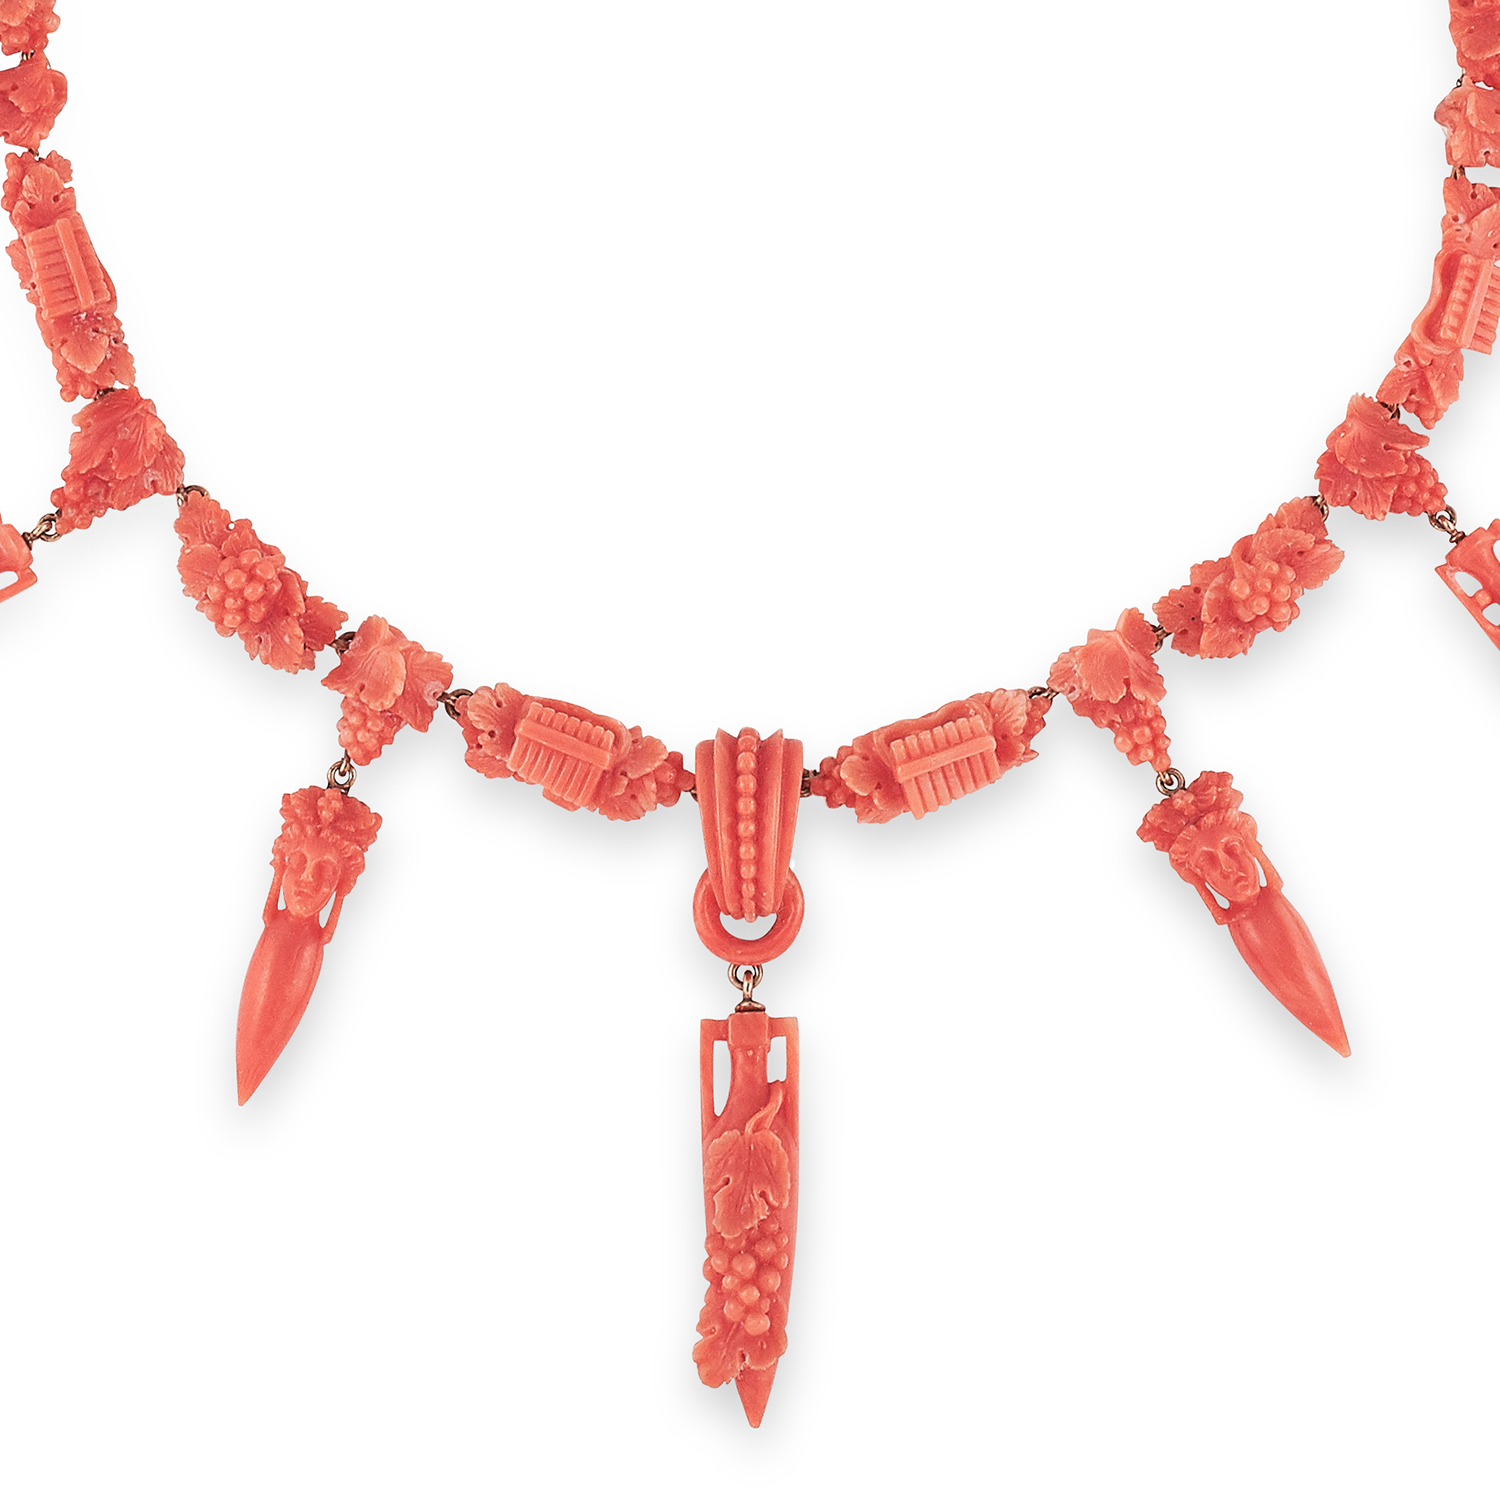 ANTIQUE CARVED CORAL NECKLACE, ITALIAN, 19TH CENTURY formed of carved links decorated with grapes, - Bild 2 aus 2